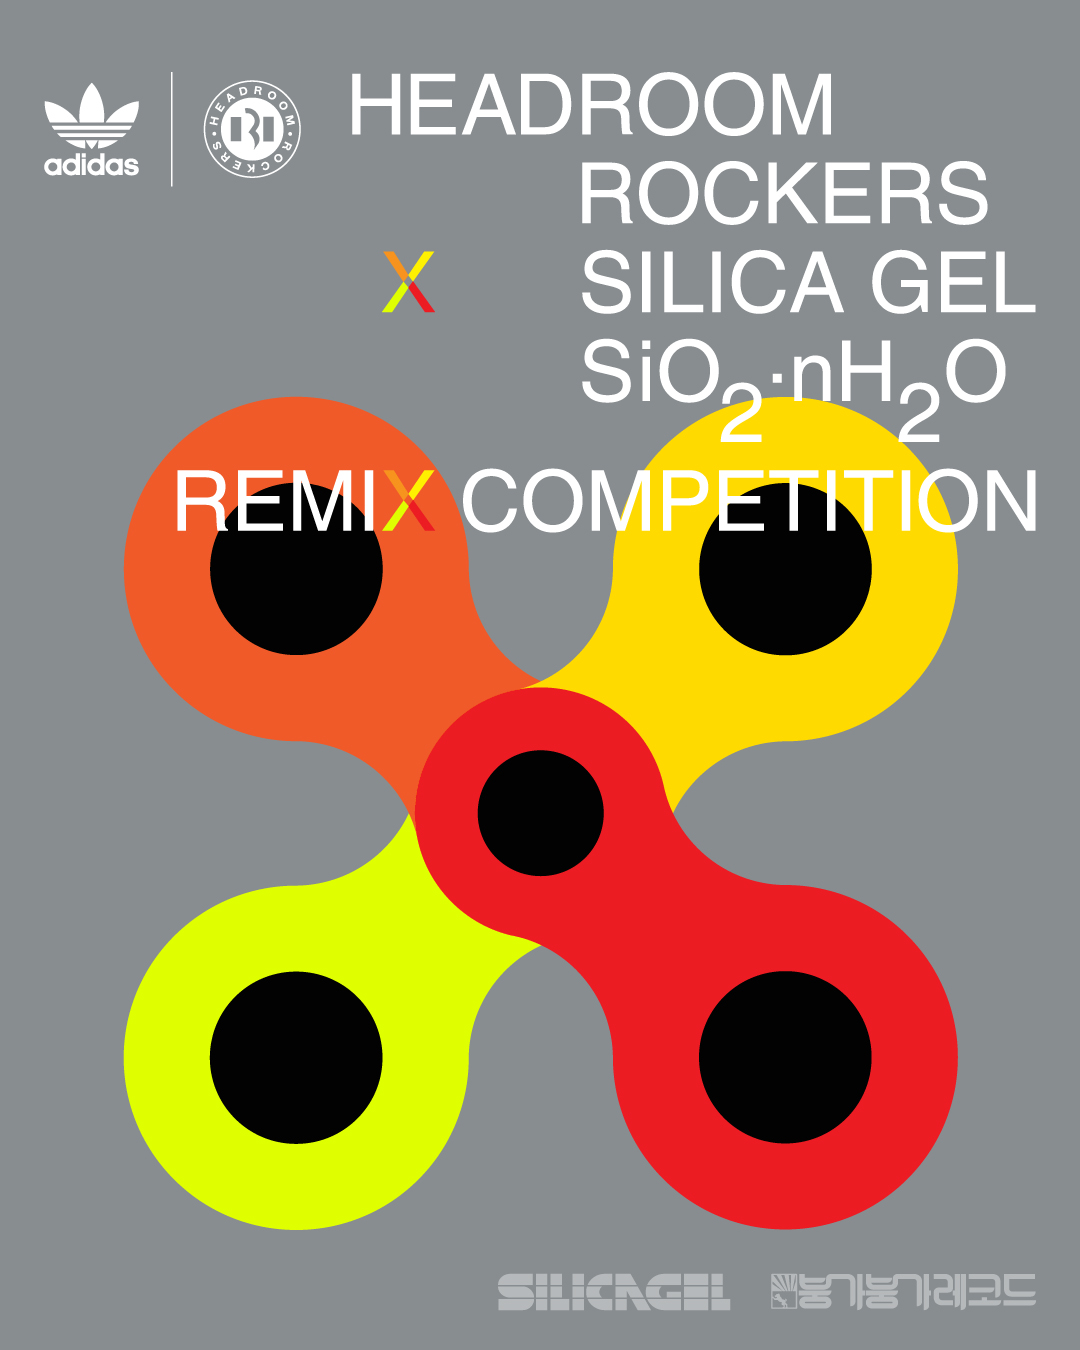 Headroomrockers-X-Silica-gel-remix-competition_v1.jpg